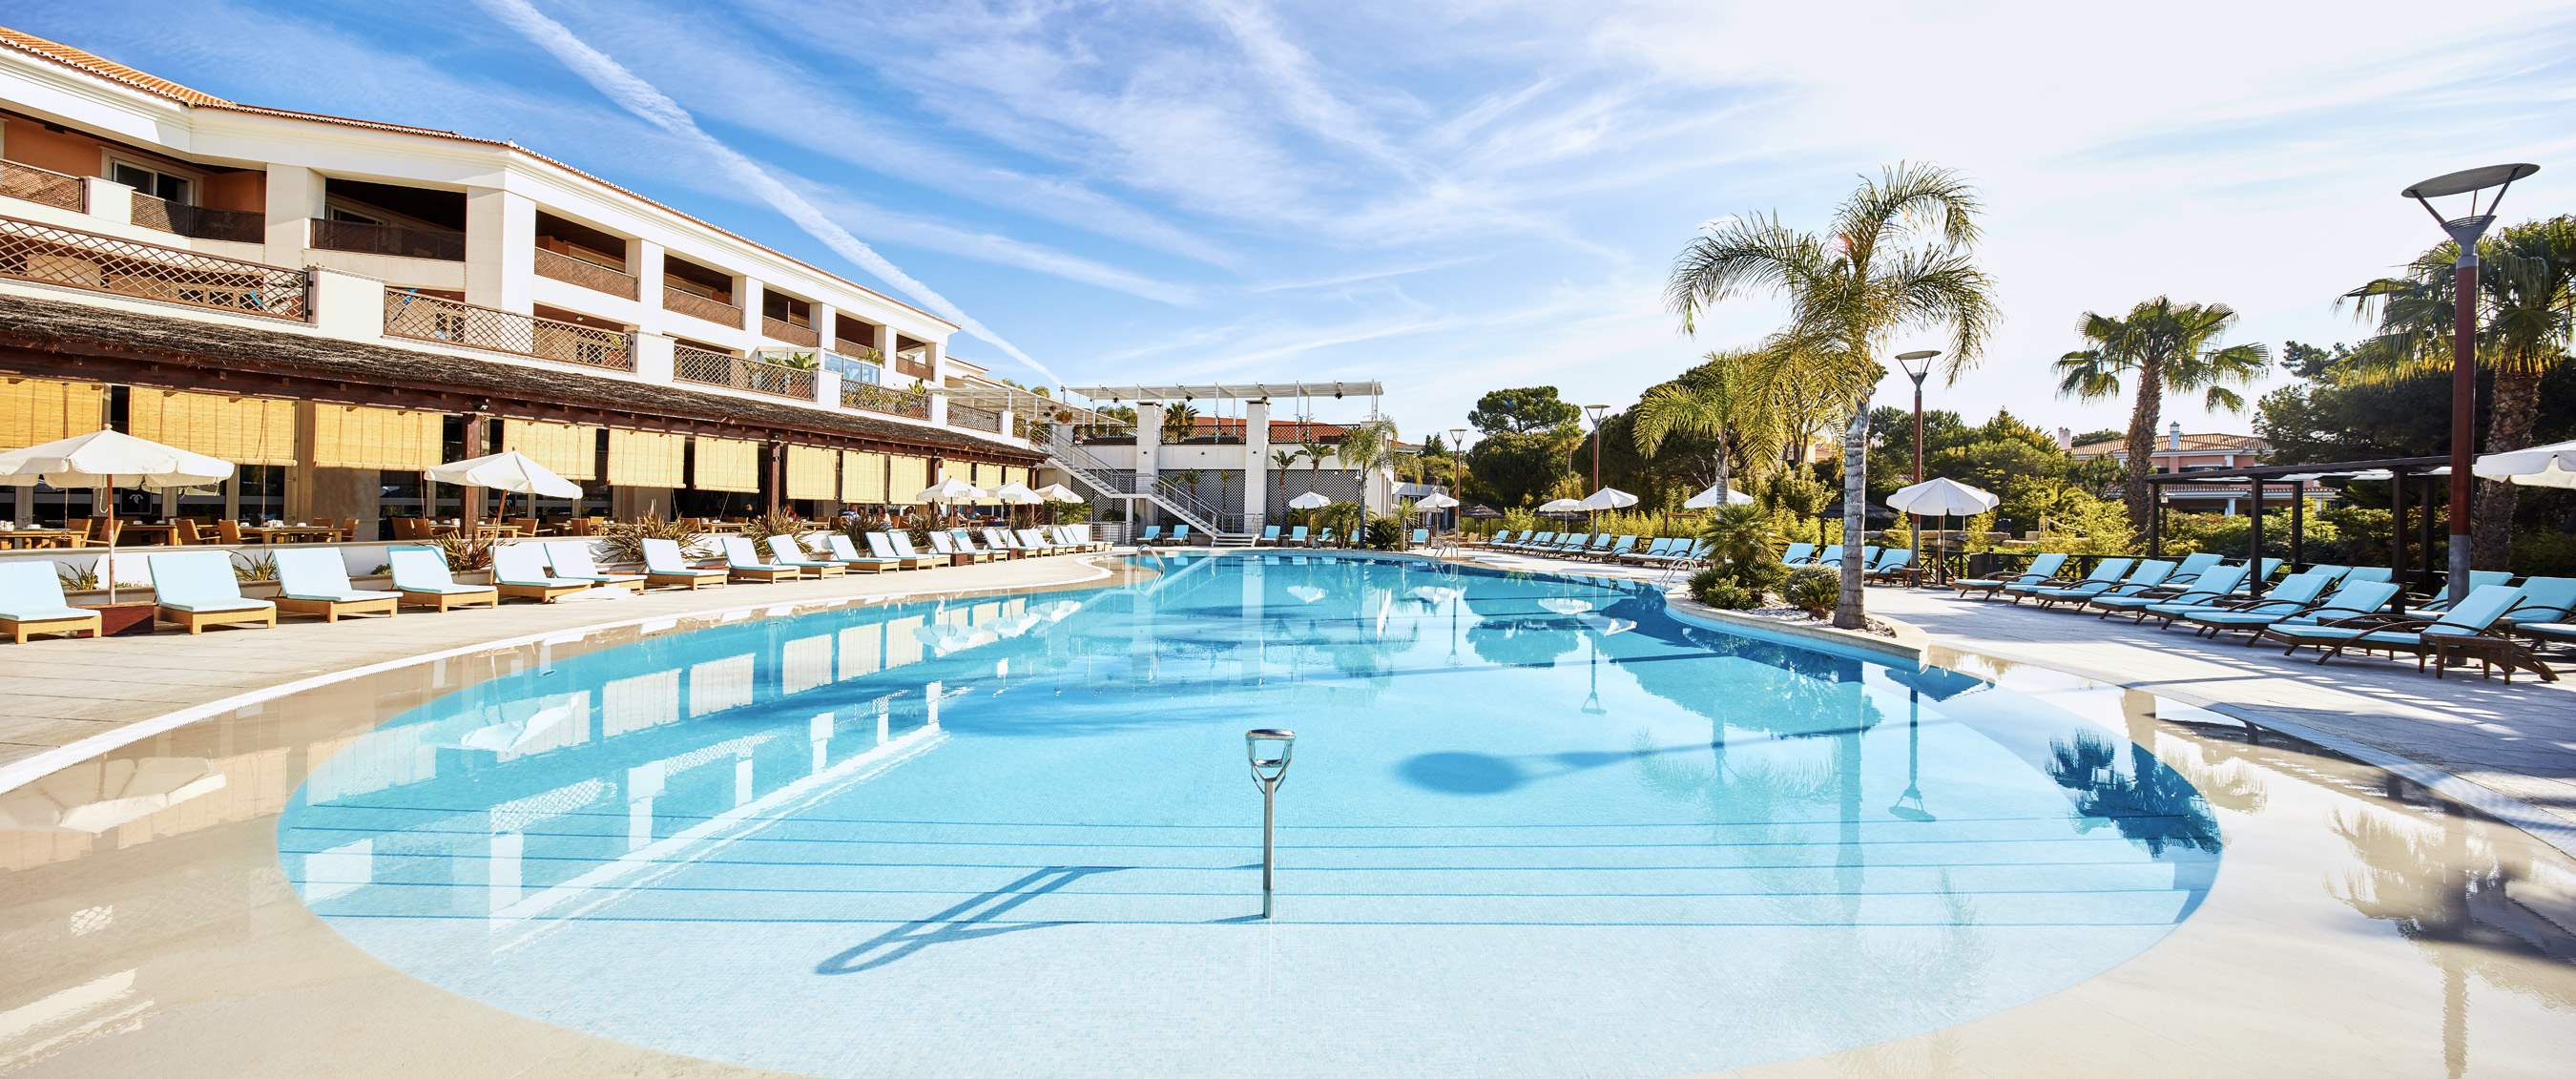 Wyndham Grand Algarve 2 Bedroom, Deluxe Family Suite, Pool Side, Room Only, 2 bedroom apartment in Wyndham Grand Algarve, Algarve Photo #35